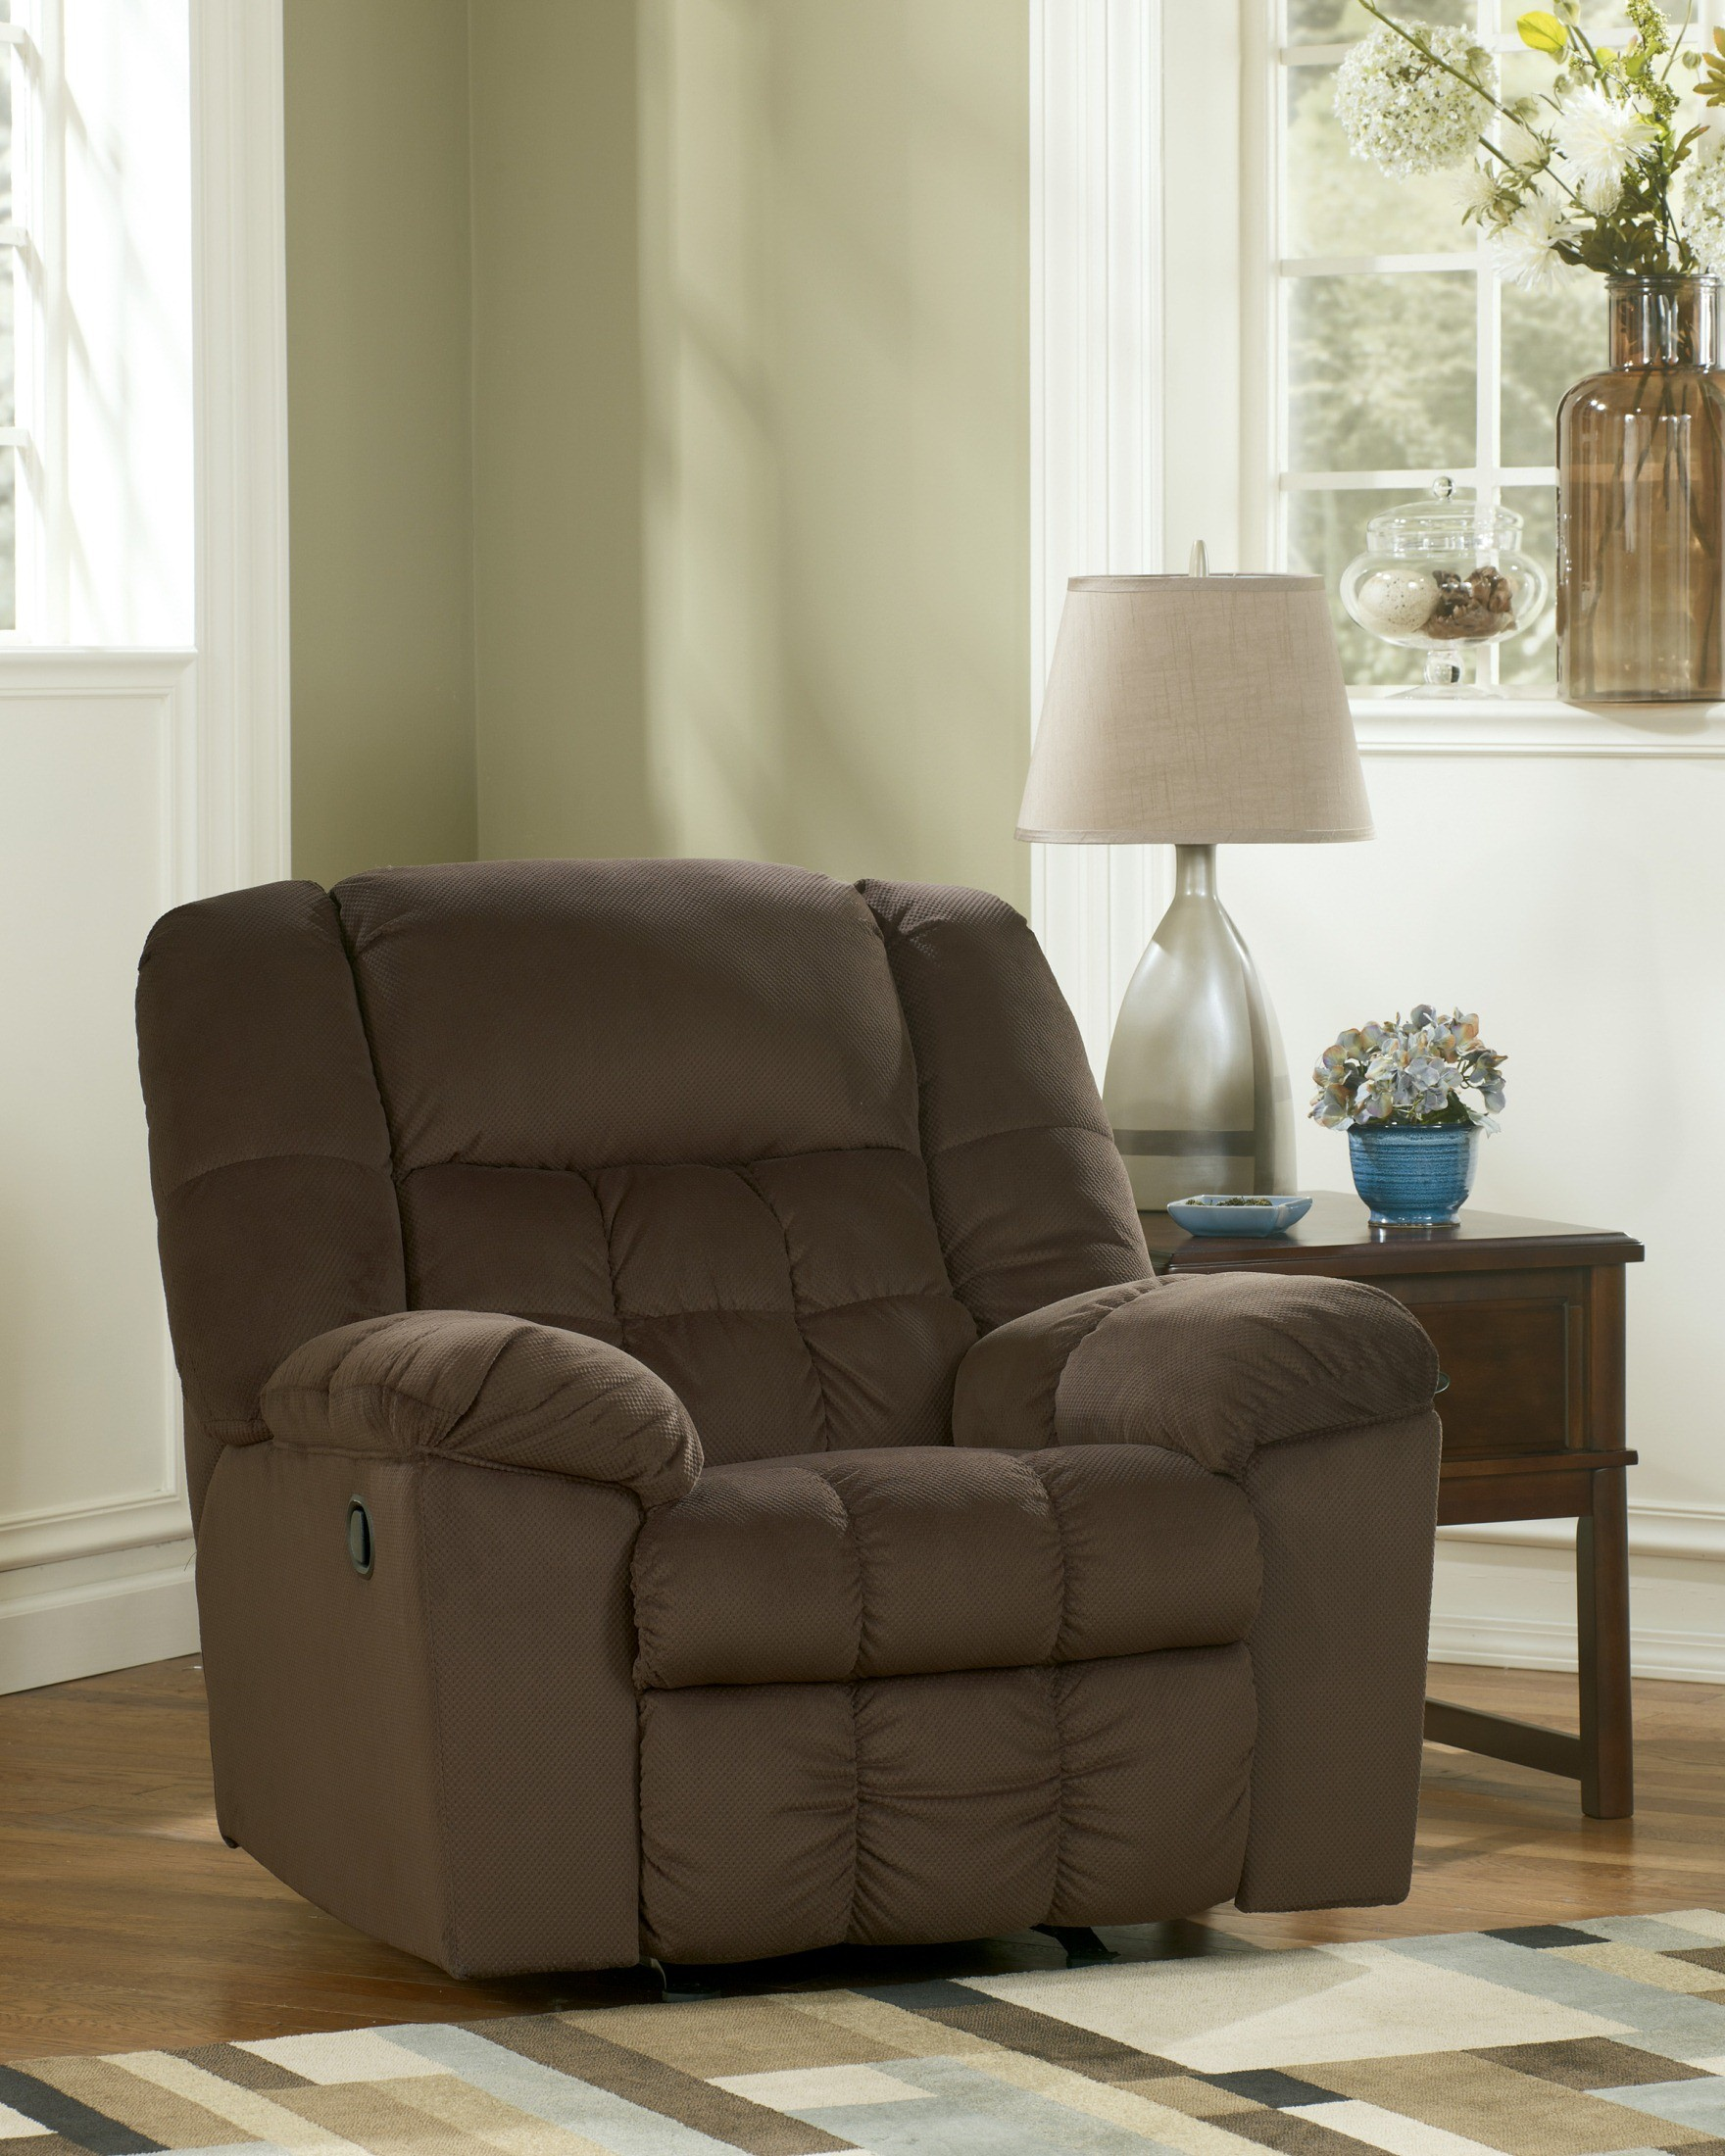 Ashley furniture lowell chocolate rocker recliner for Ashley chaise lounge recliner